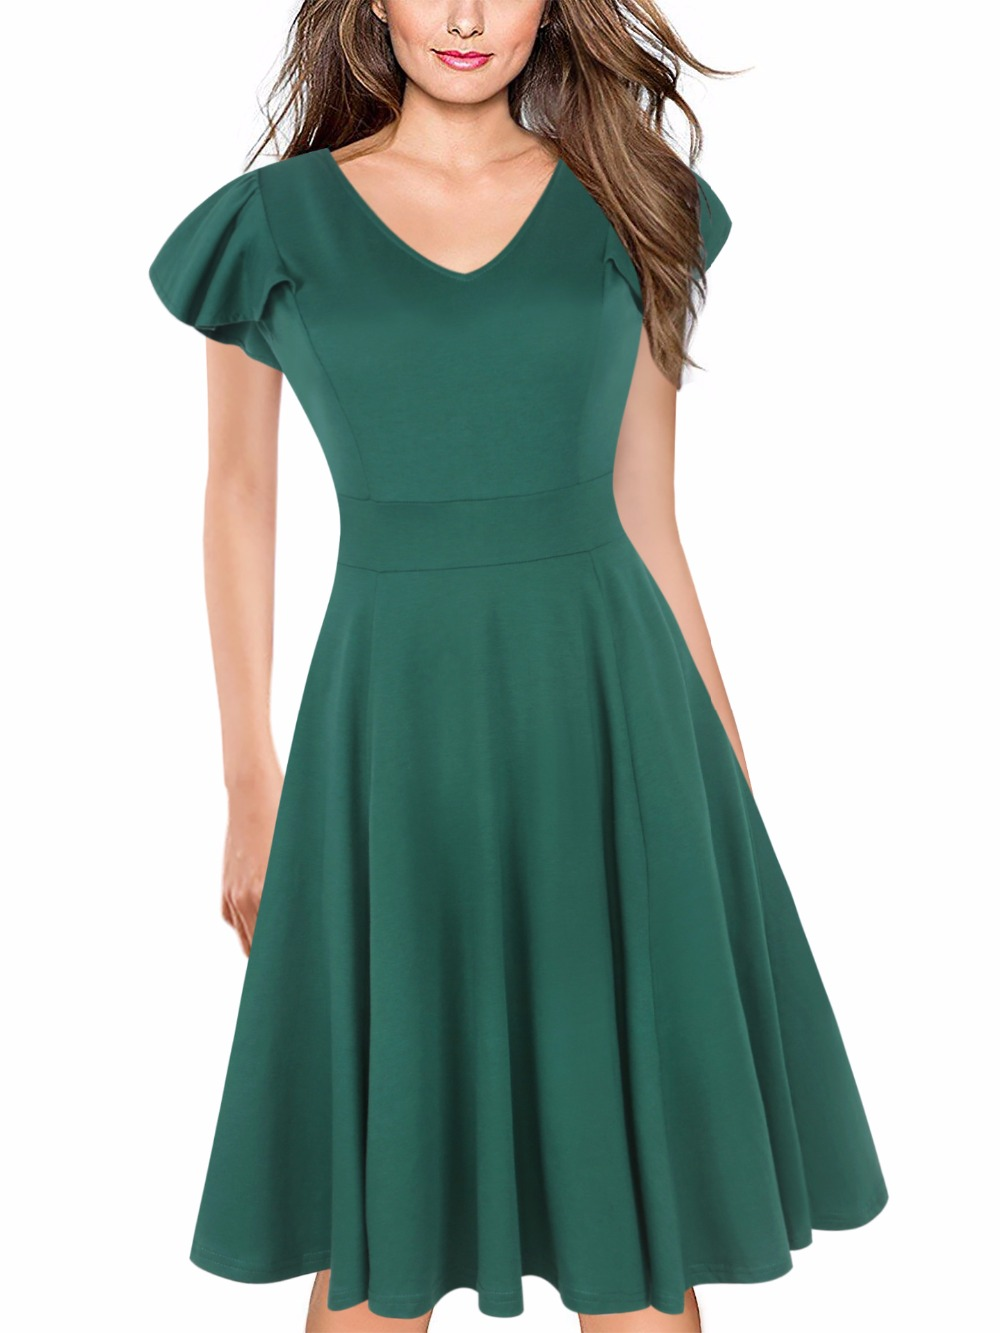 on wholesale check out fashion style Ruffle Sleeve Plain Green Dress Women Vintage Party Wear To ...